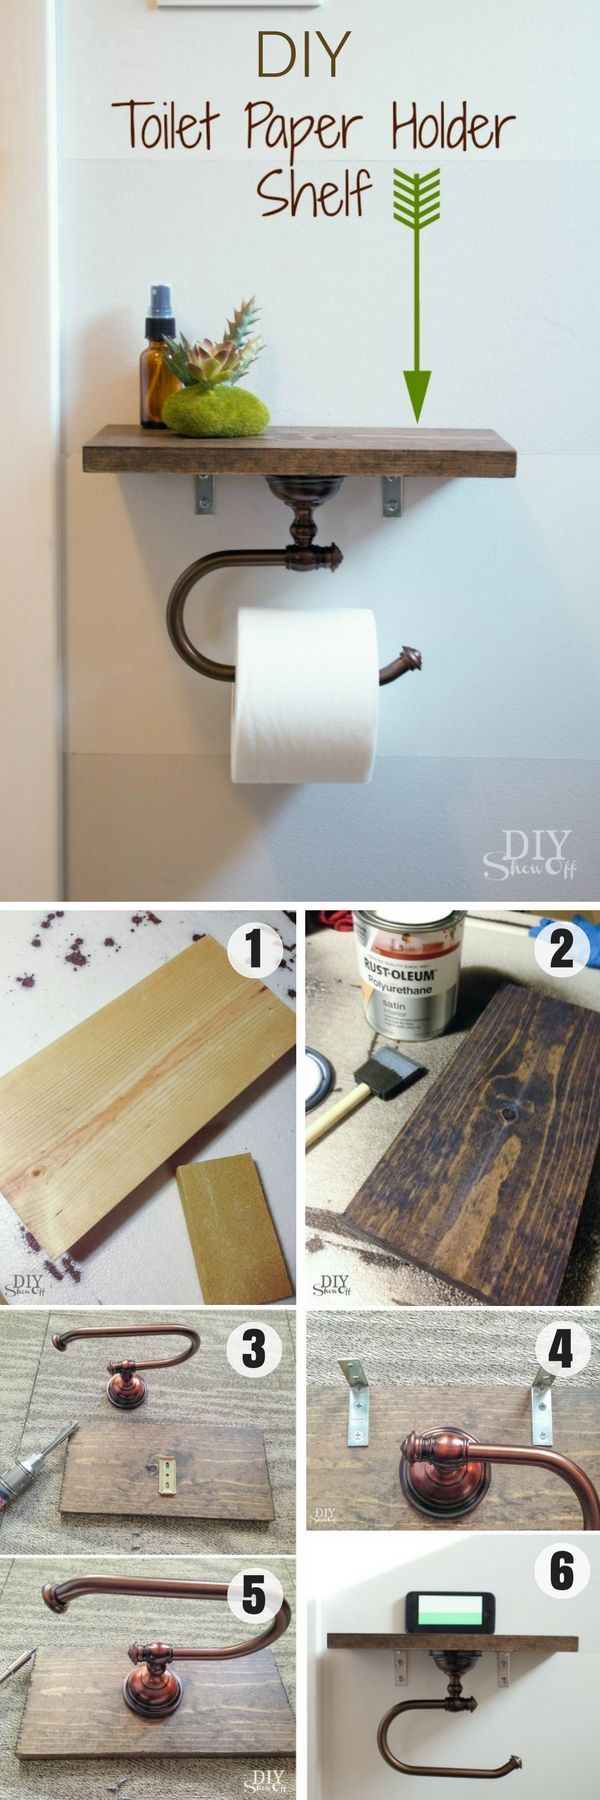 Rustic bathroom decor ideas are among the first you'll try when you decide to get your hands dirty, so to speak. Here are 20 gorgeous DIY…